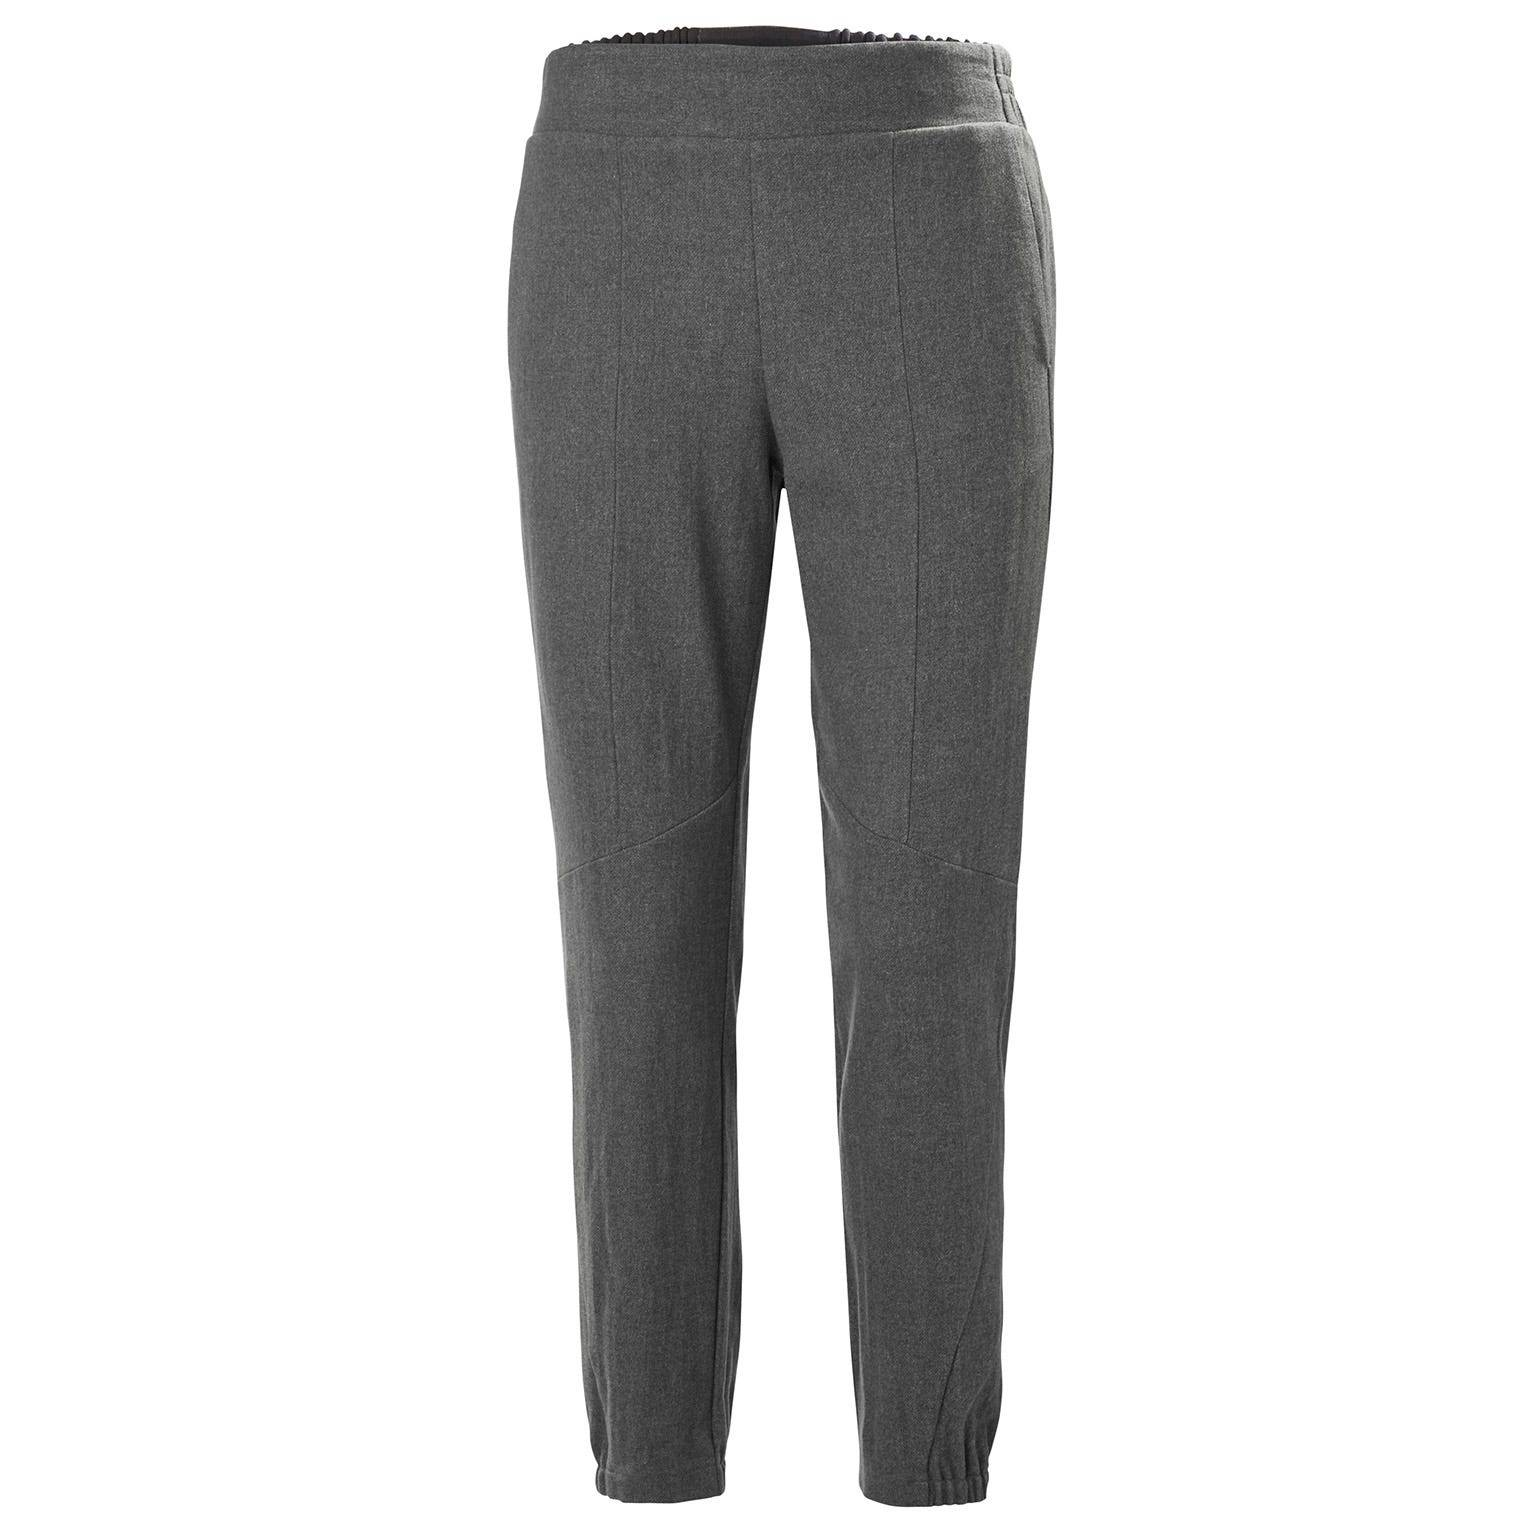 Helly Hansen W Wool Travel Pant Womens Hiking Grey XS